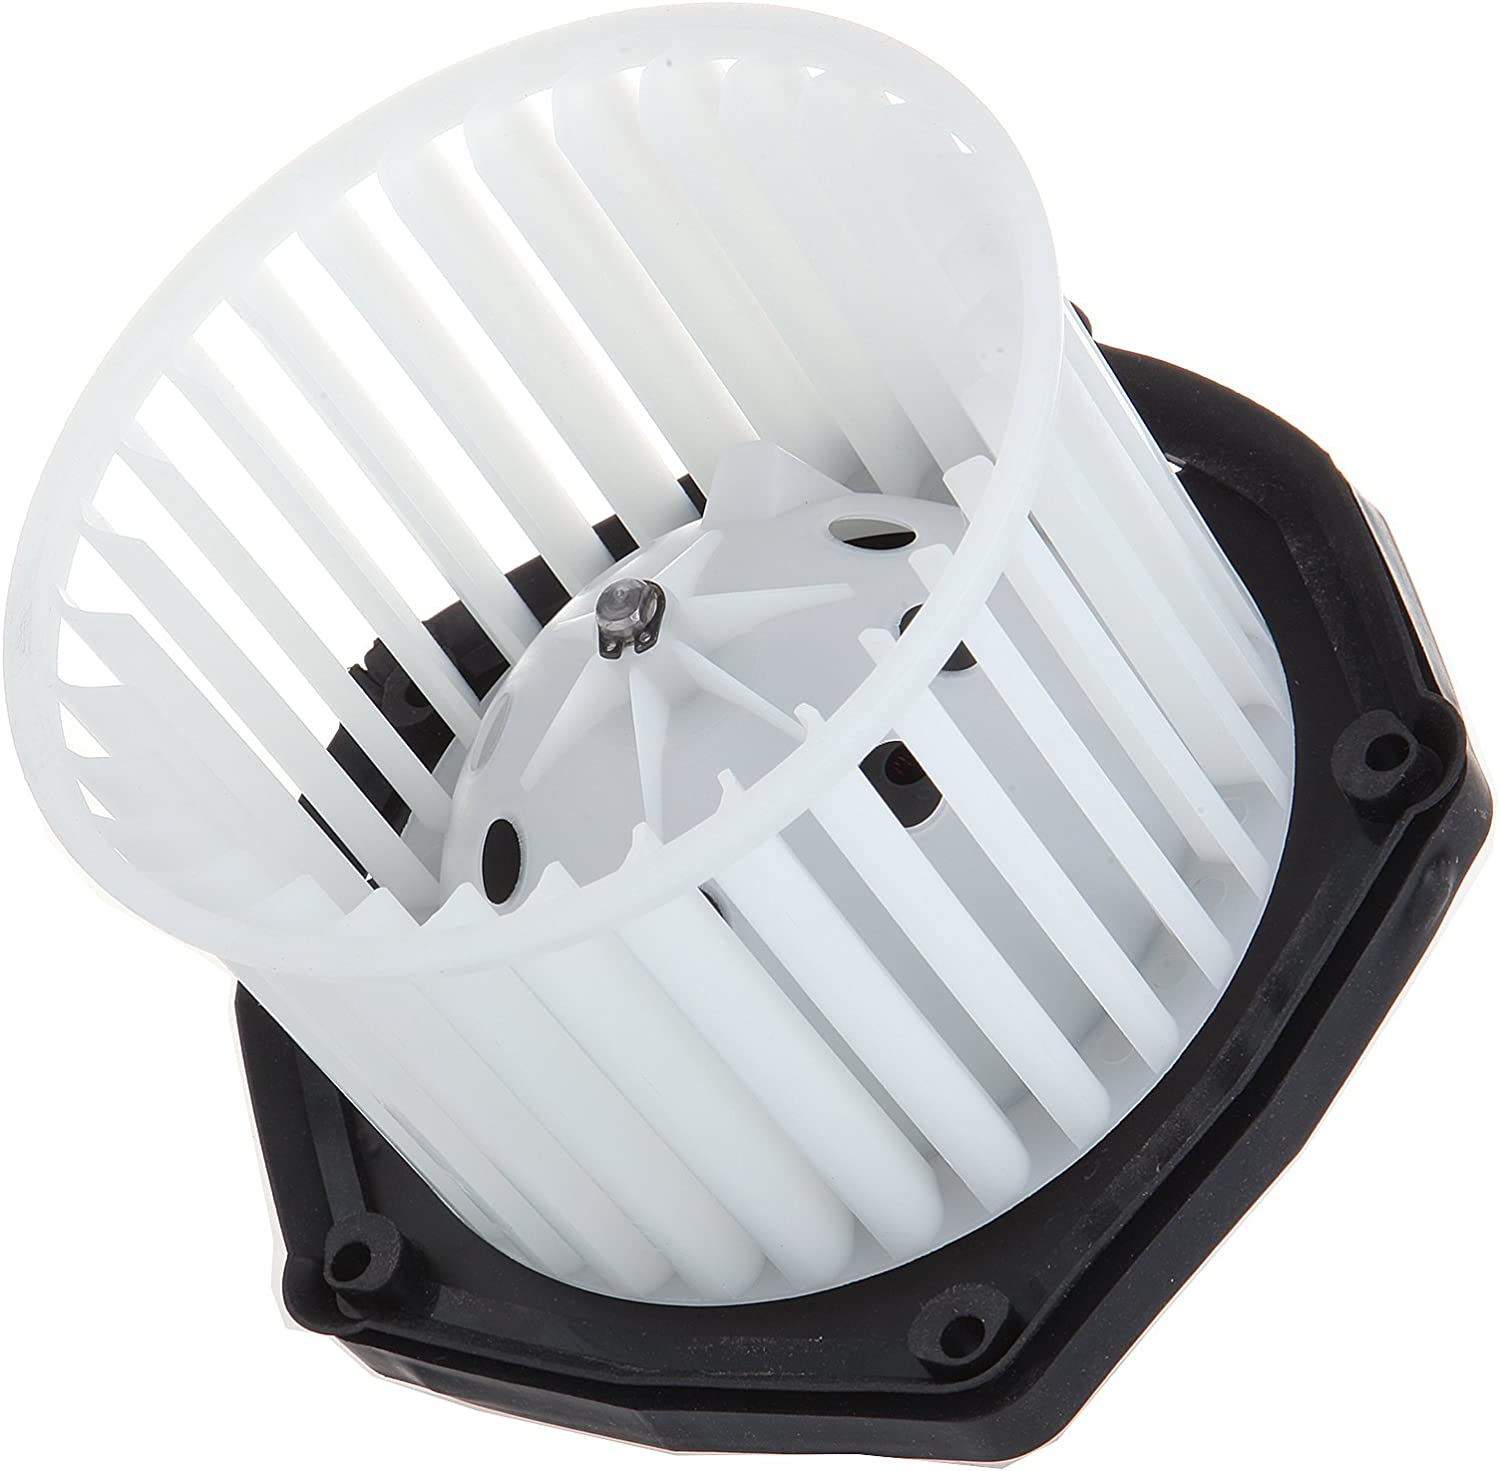 Sale Aintier 1PC ABS Blower Motor HVAC Air Fan Conditioning Fit Cage Opening large release sale